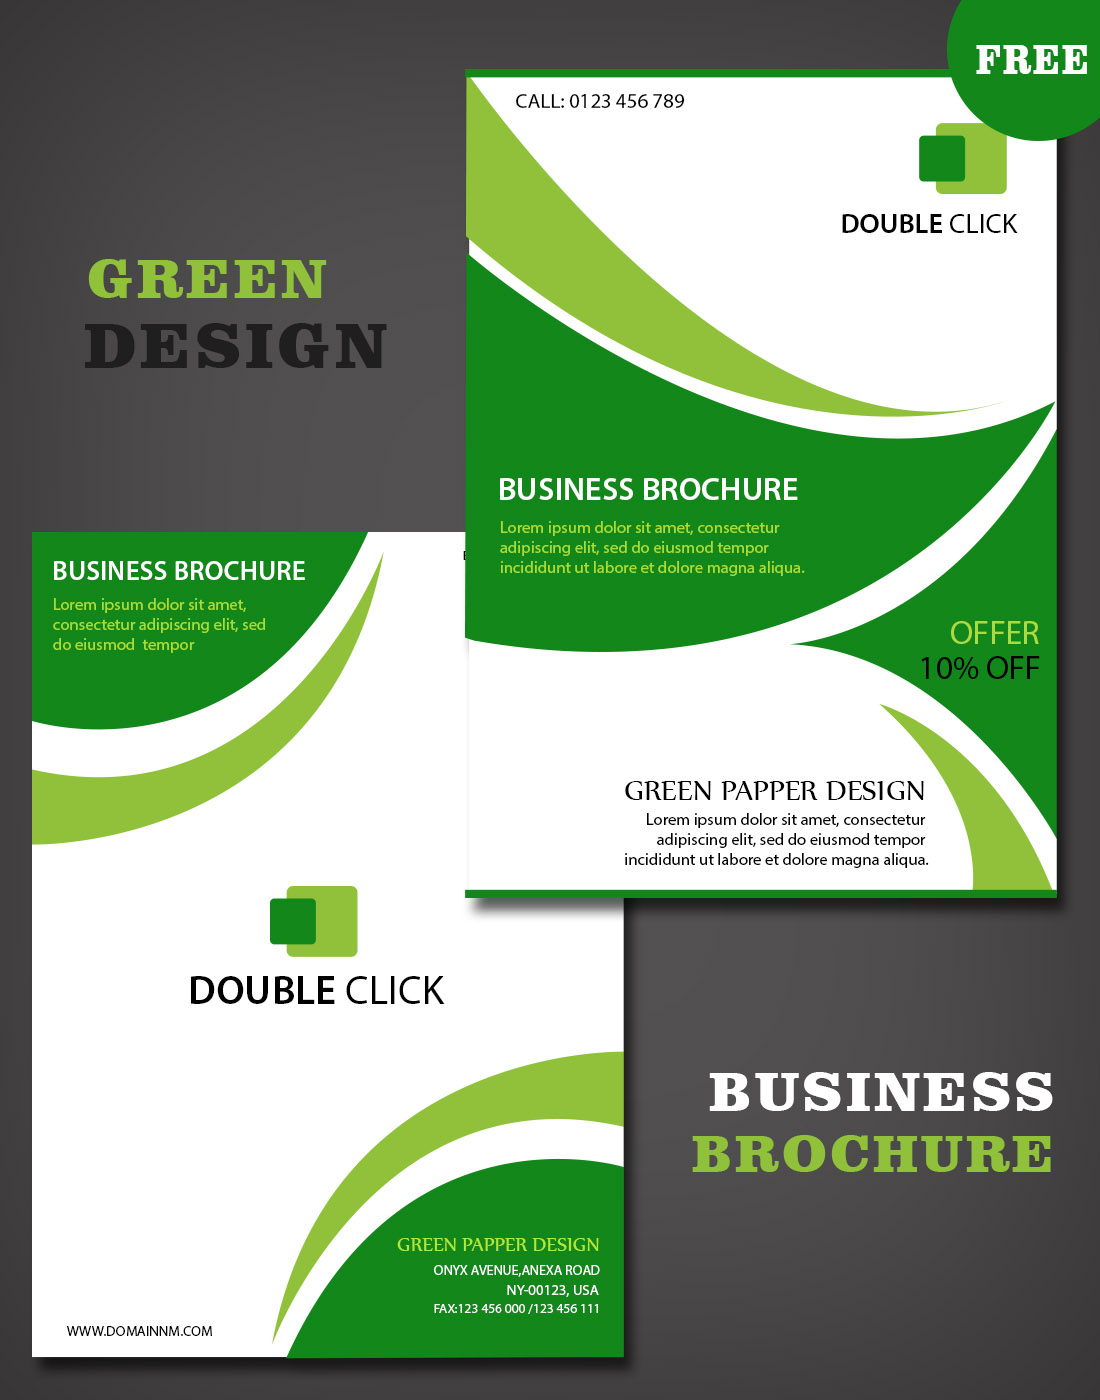 Business brochure templates download for Company brochure template free download